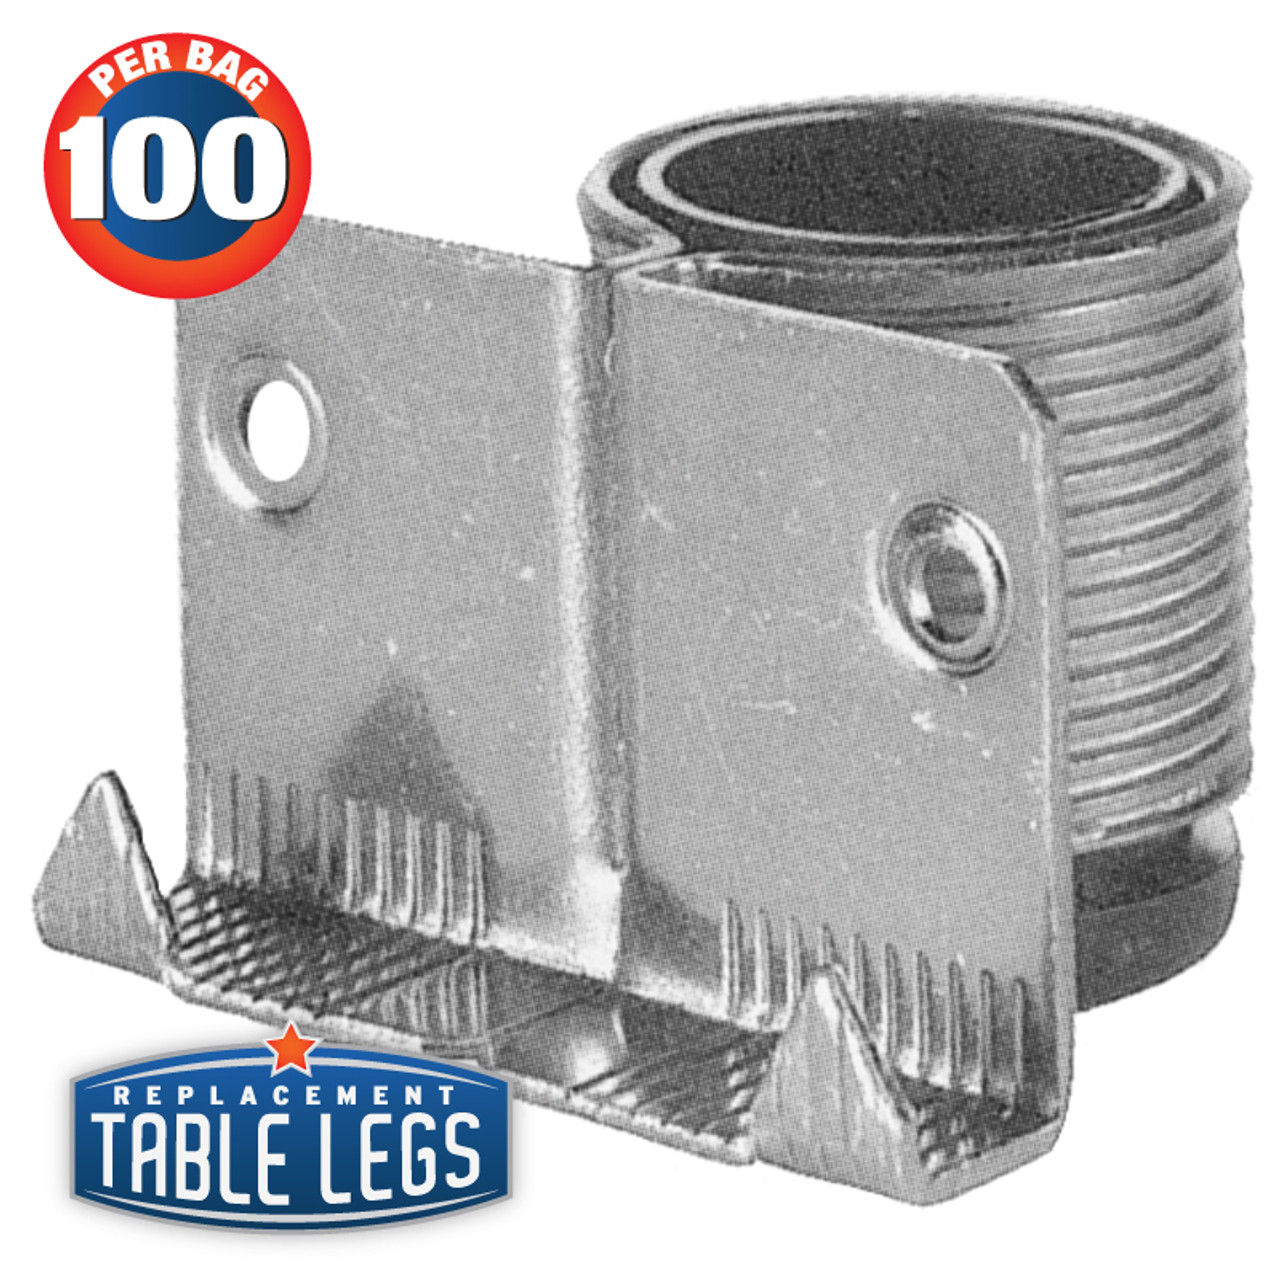 Steel Cabinet and Furniture Leveler, Regular Duty,  ABS insert - replacementtablelegs